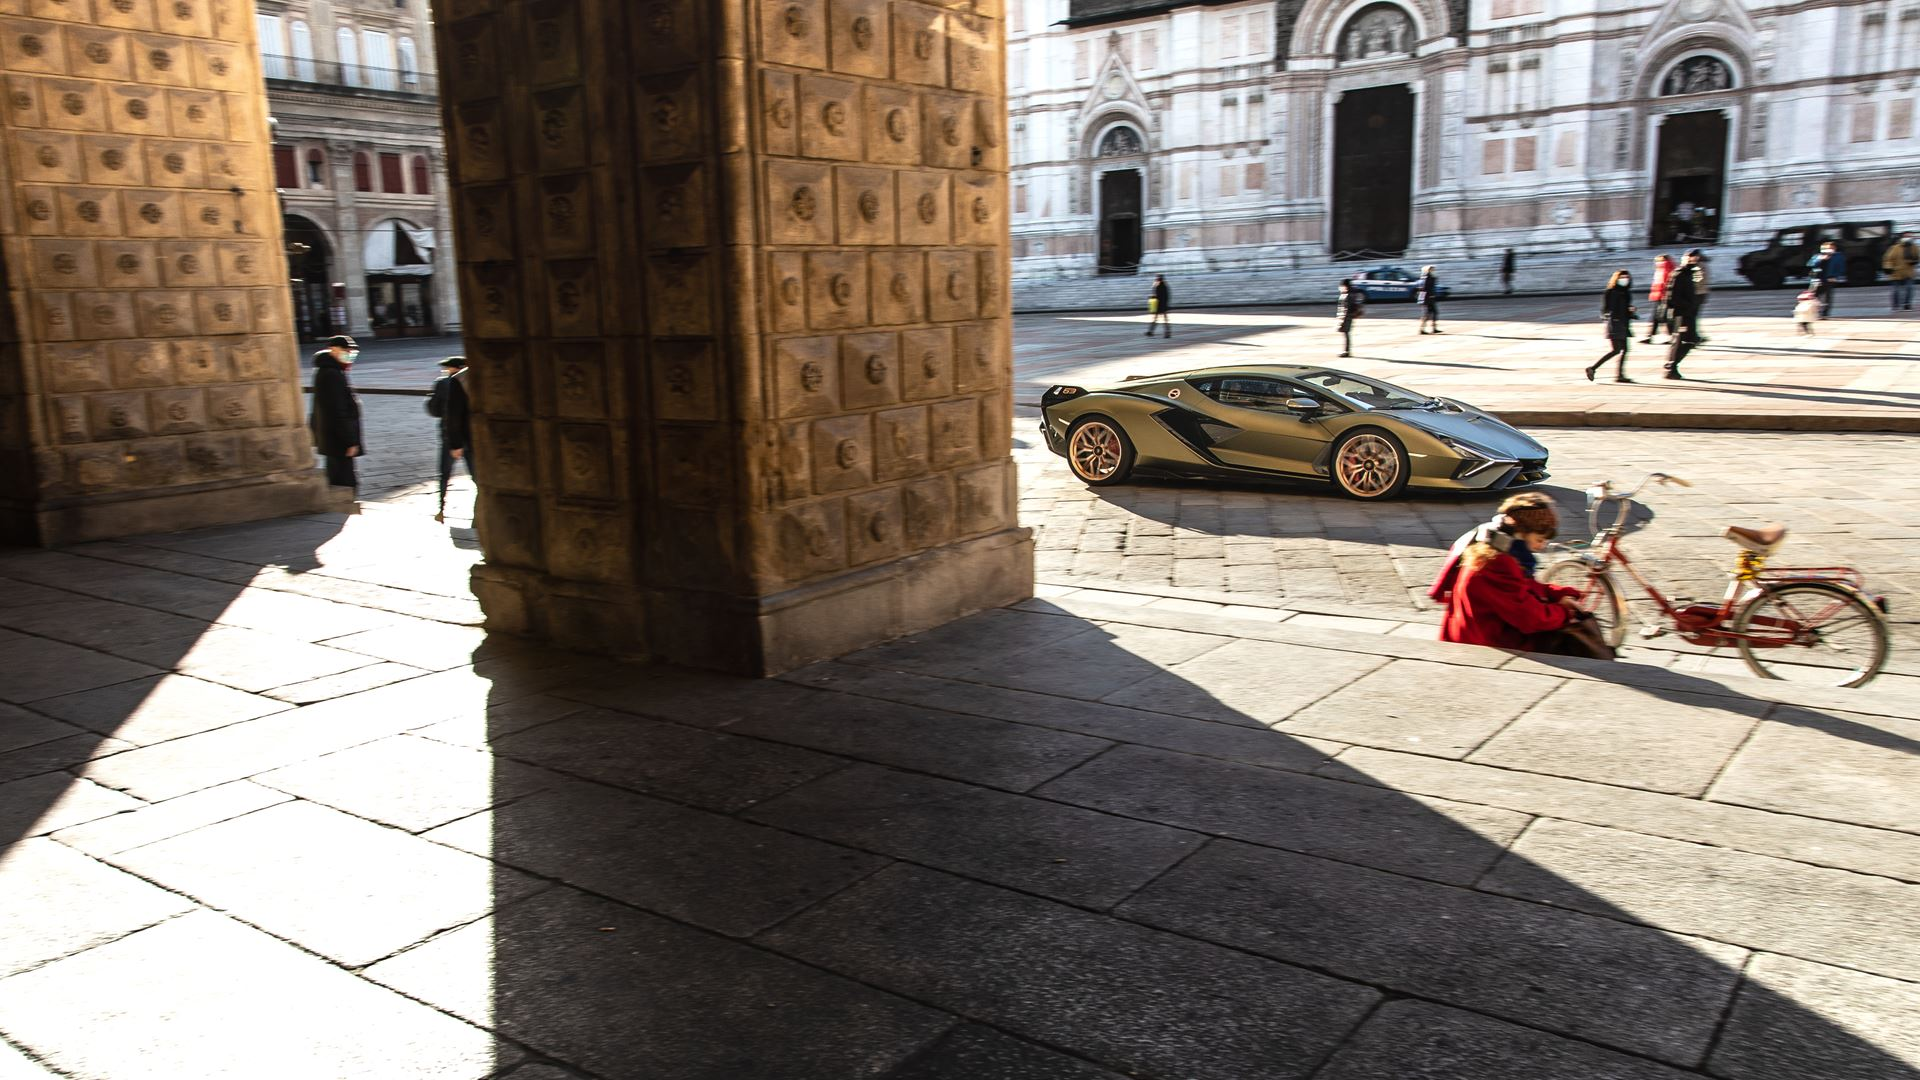 Lamborghini Sián pays homage to the porticoes of Bologna. Following the UNESCO designation, the super sports car from Sant'Agata travels the streets of Bologna's porticoes - Image 6